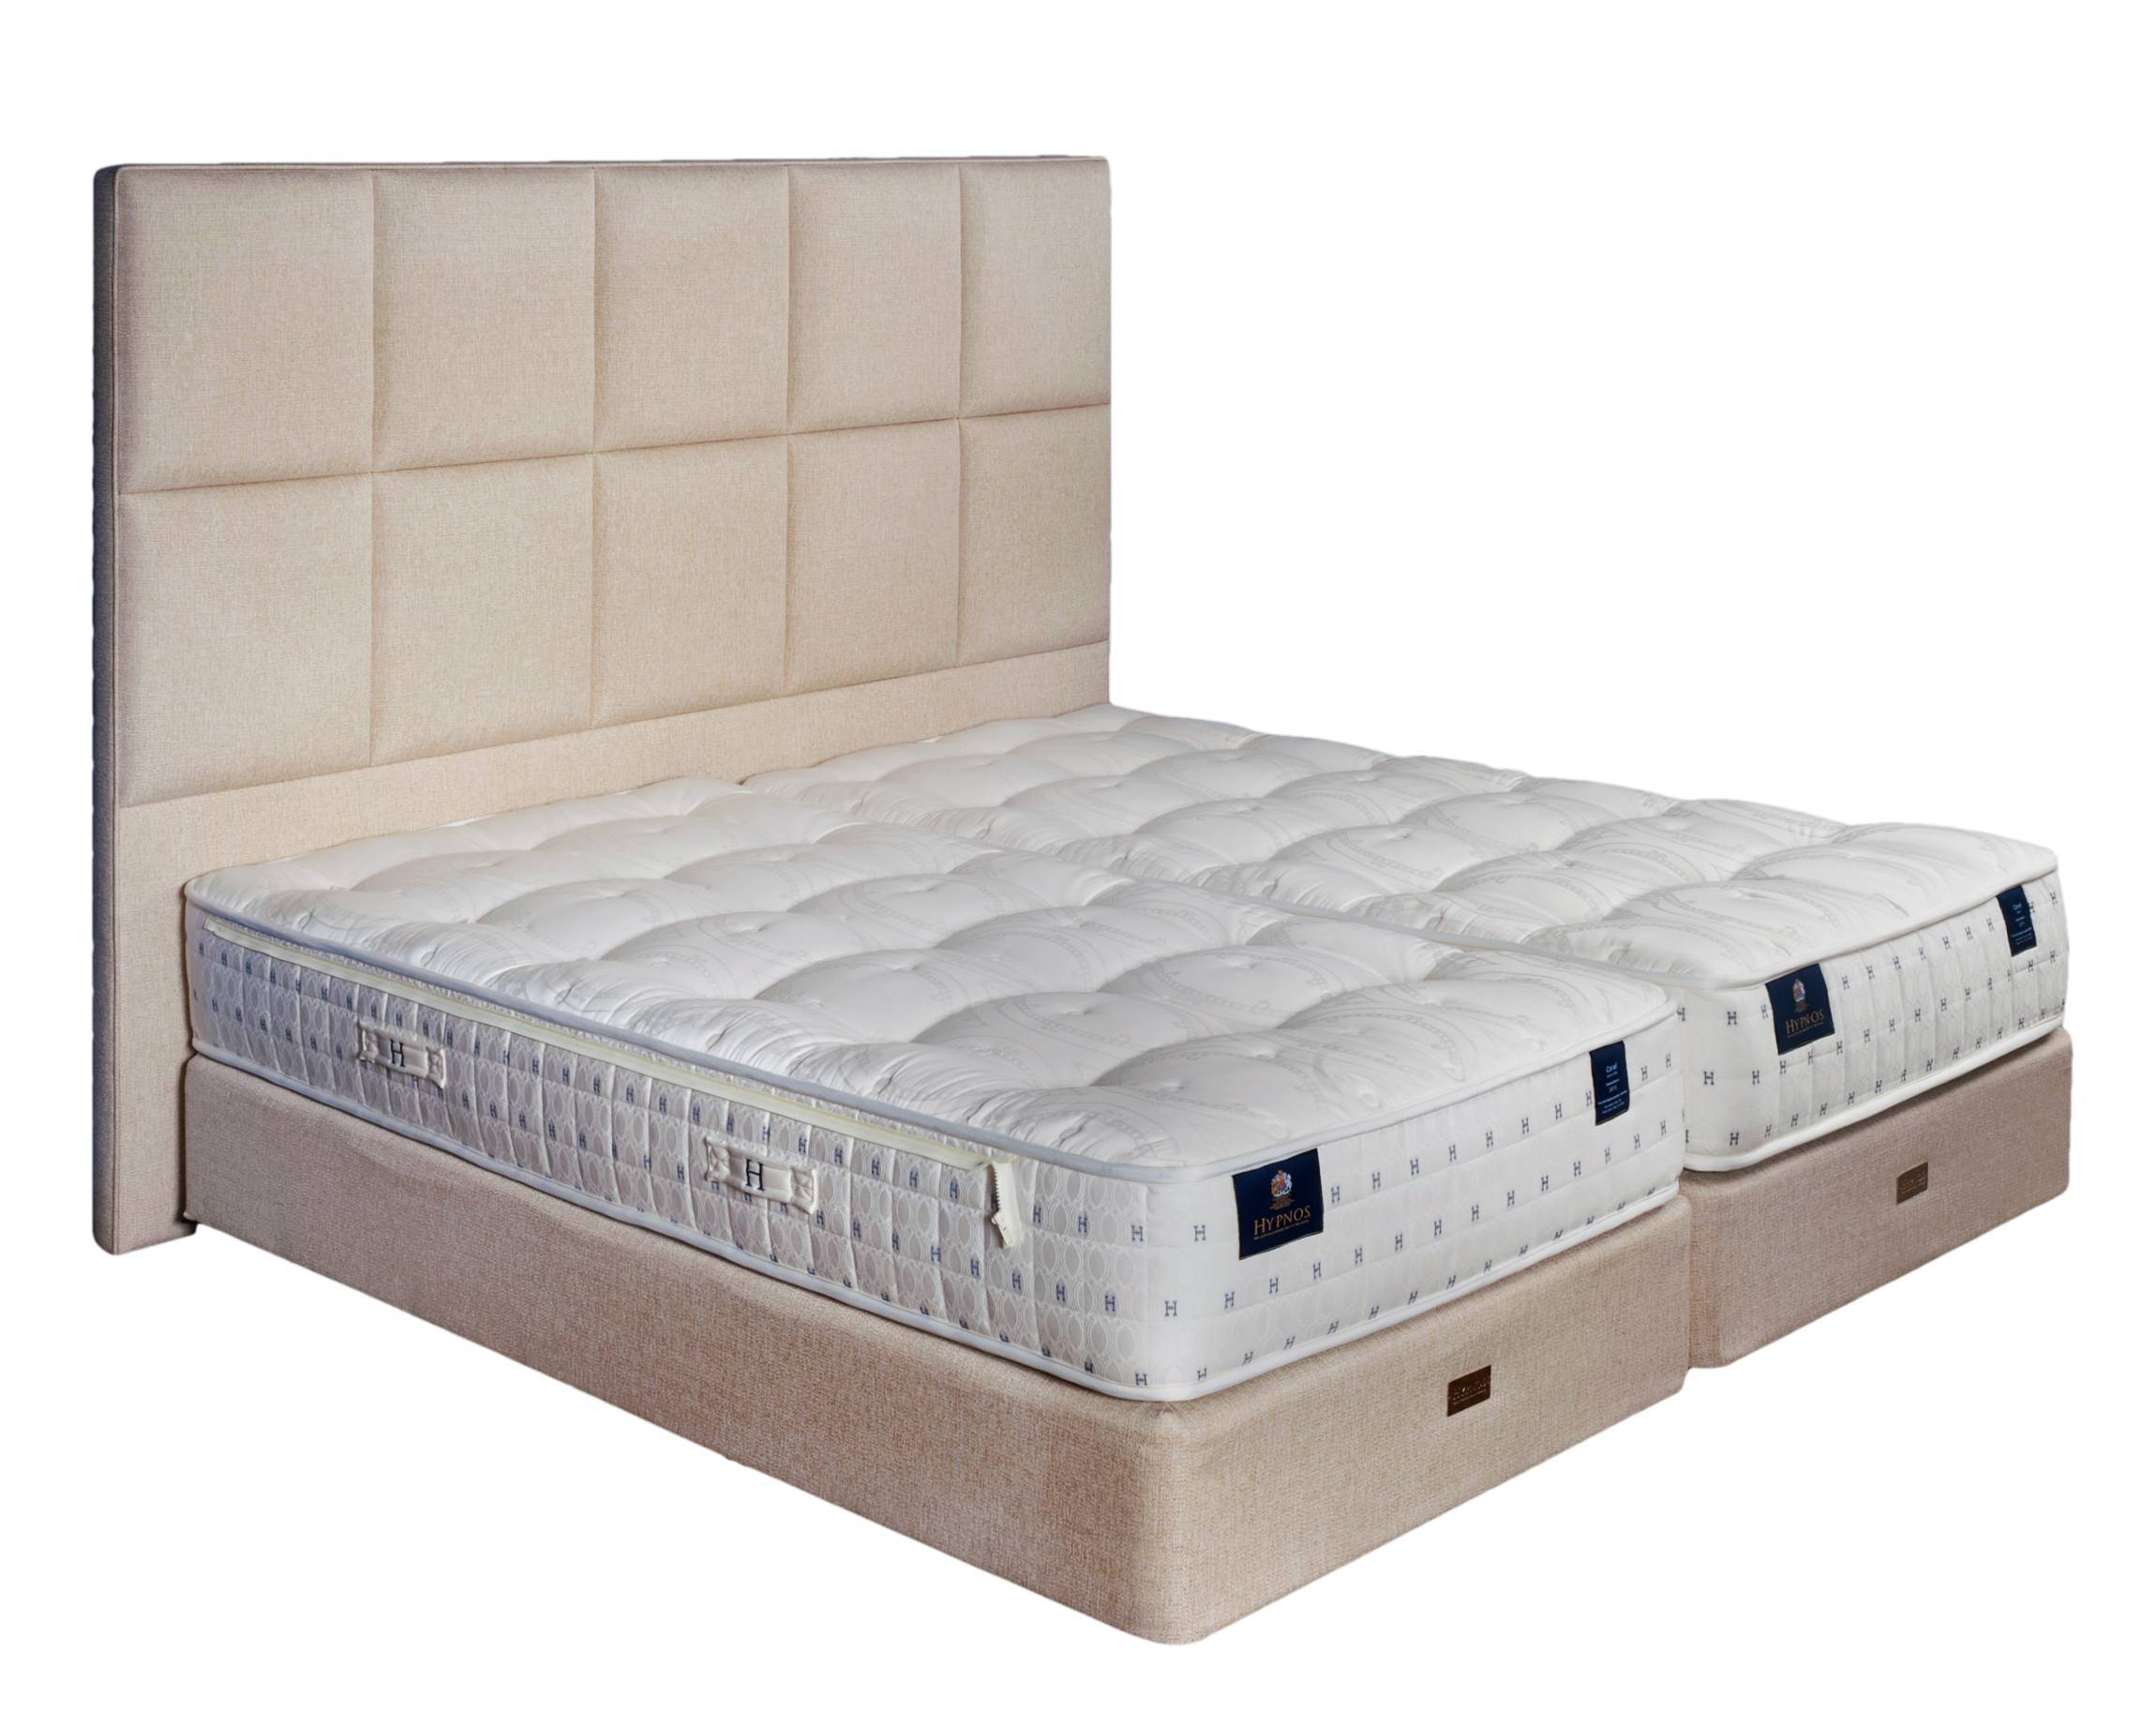 mattresses posturepedic beds mattress bedding uk sherwood and sealy